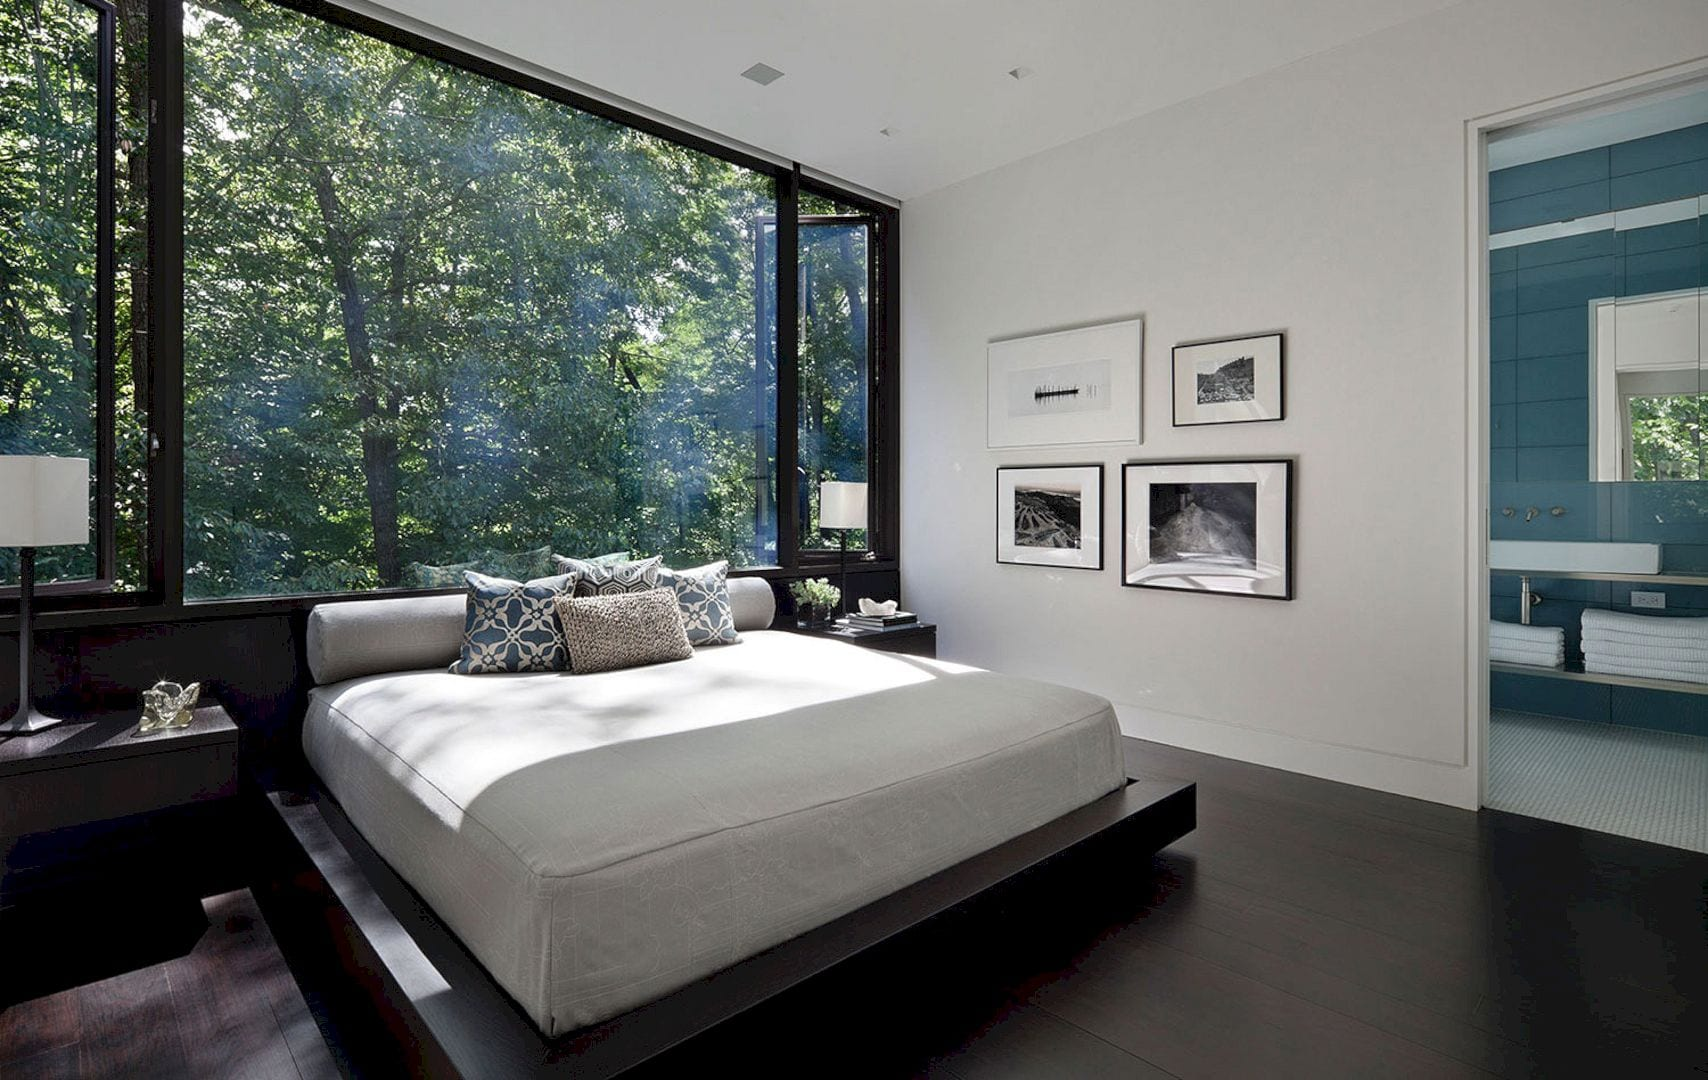 New Canaan Residence By Specht Architects 7